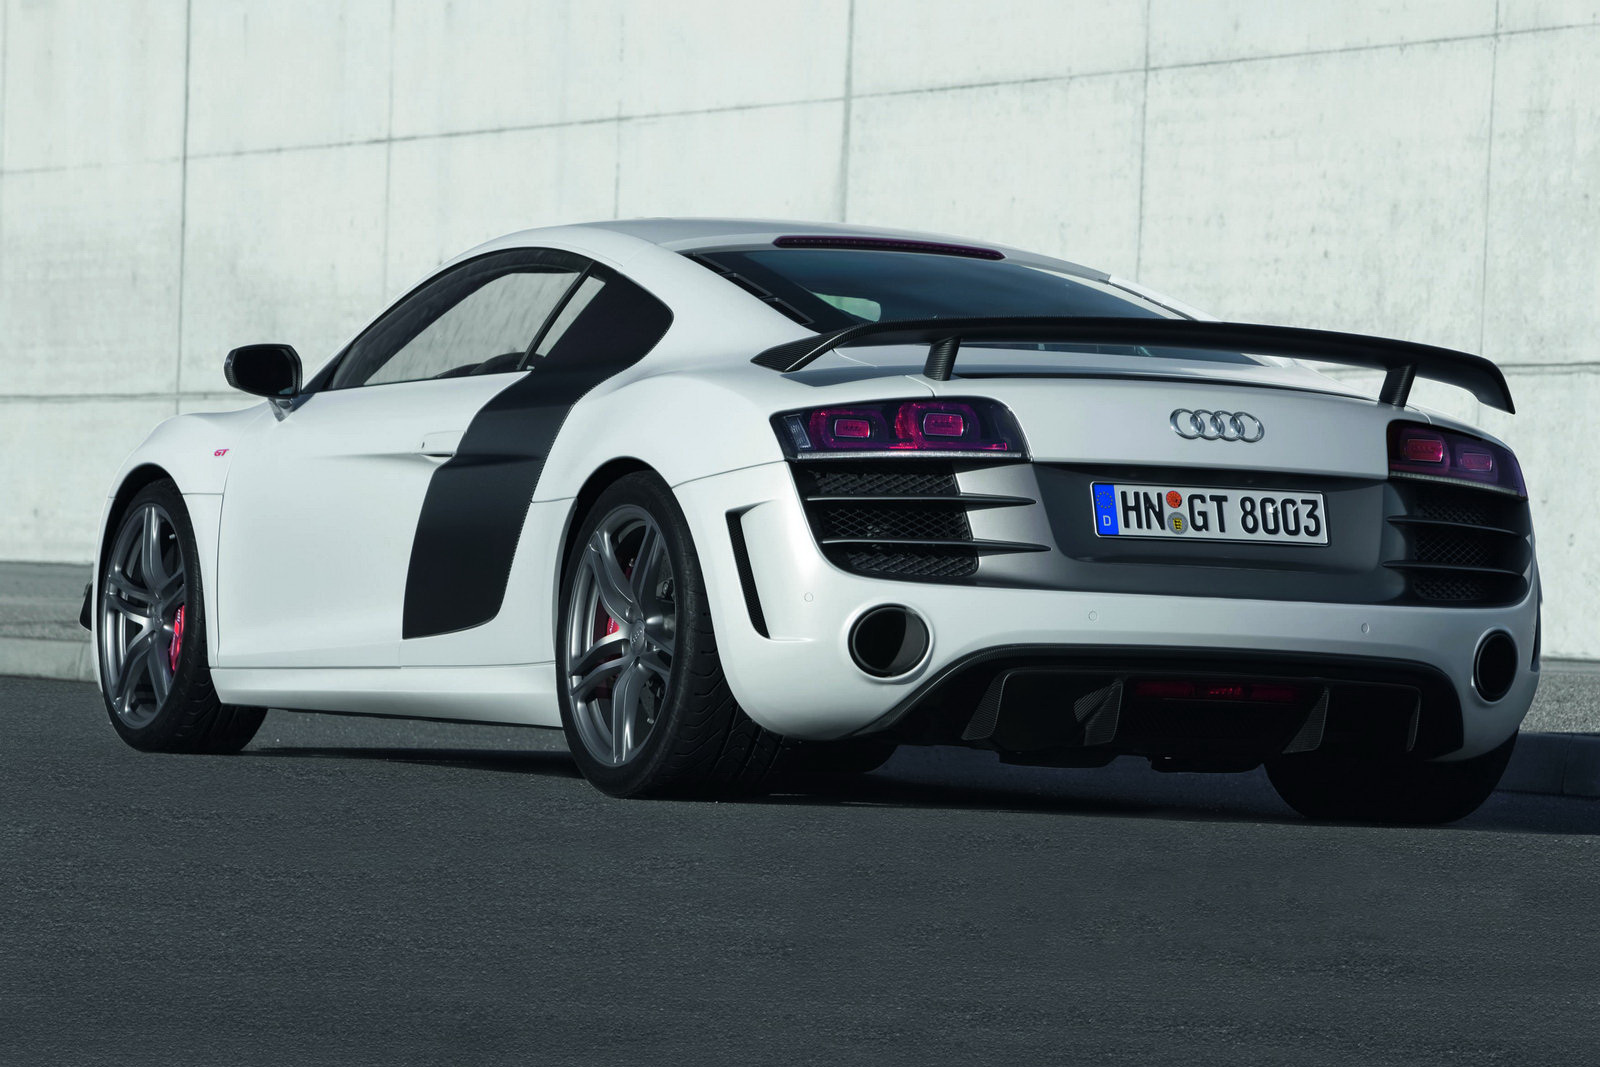 2011 audi r8 gt 560hp photos price specifications reviews. Black Bedroom Furniture Sets. Home Design Ideas